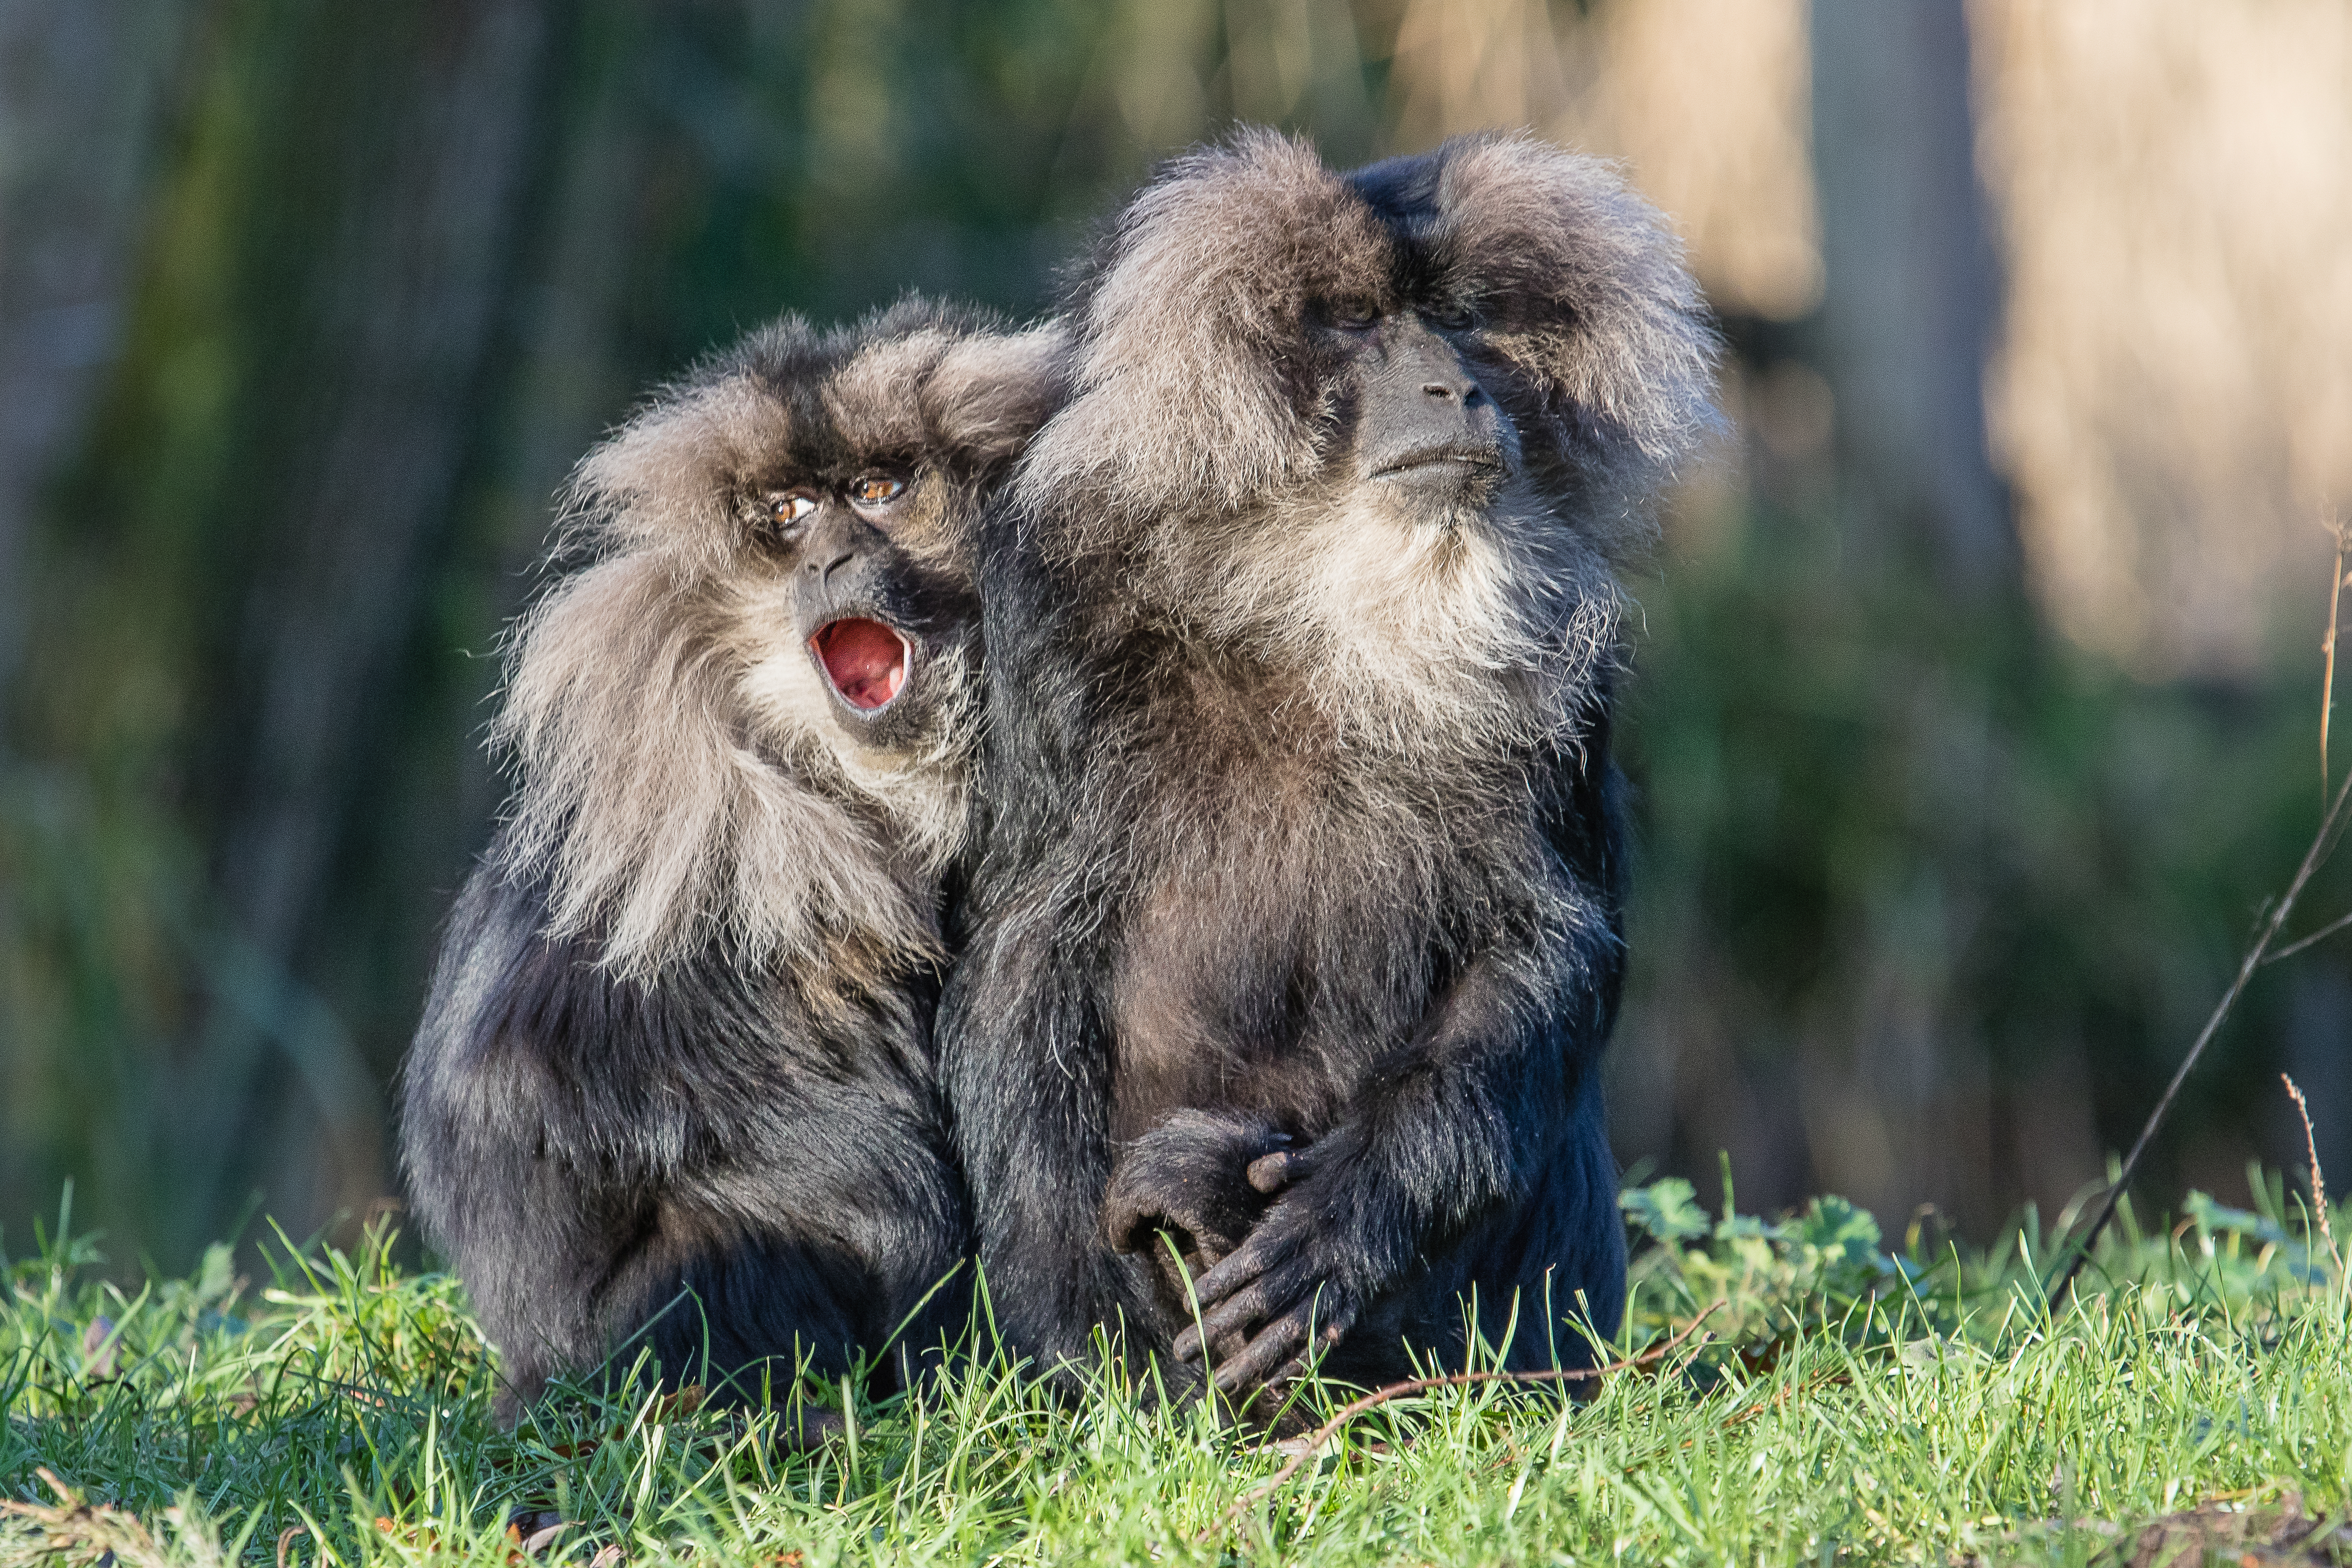 Lion-tailed macaque 2016-01-08-00052, Aap, Macaque, Zoogdieren, Wanderoe, HQ Photo